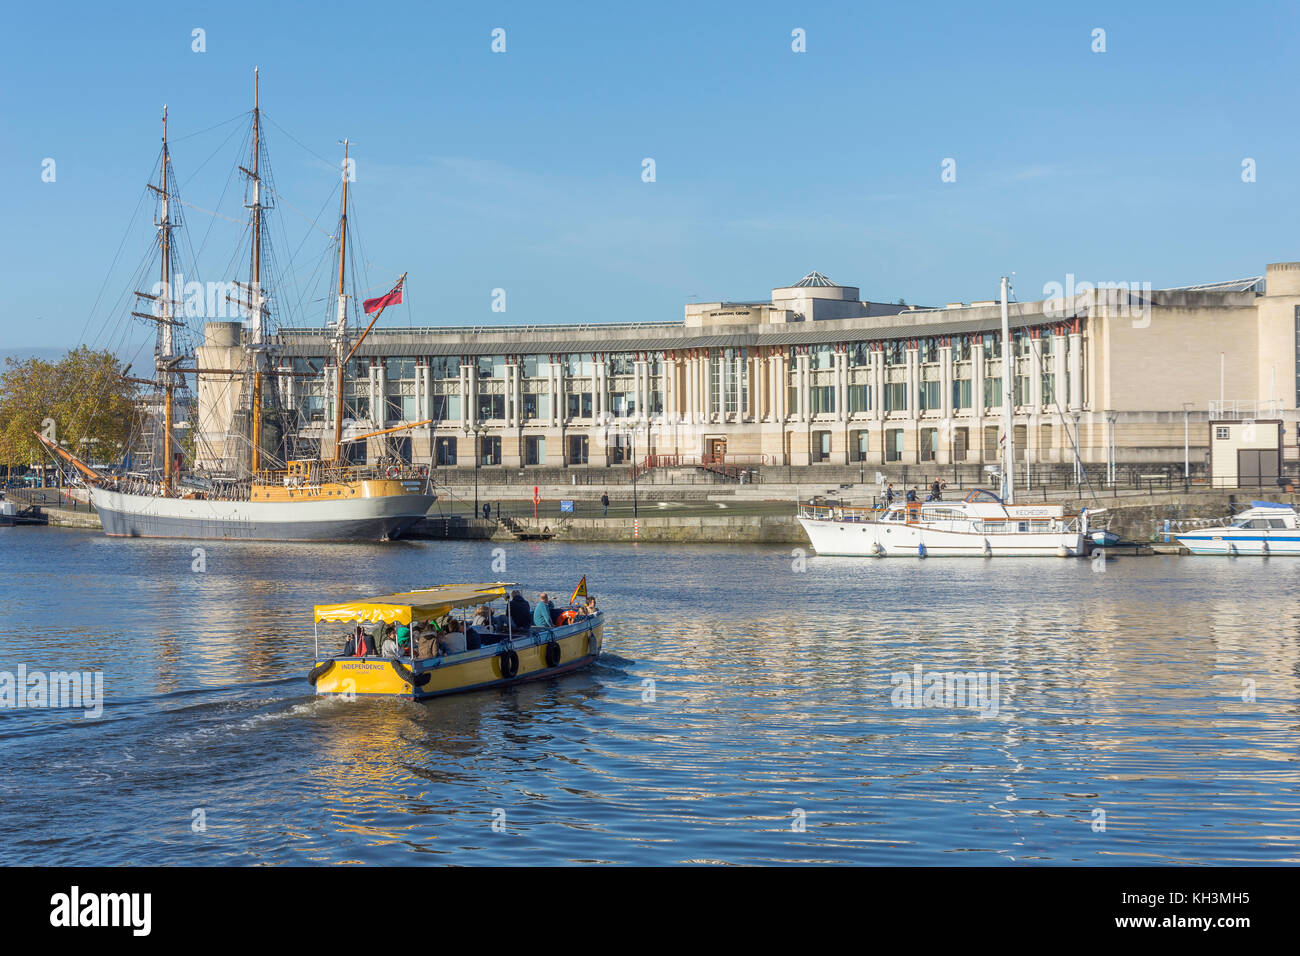 'Independence' ferry passing Amphitheatre and Waterfront Square, Harbourside, Bristol, England, United Kingdom - Stock Image